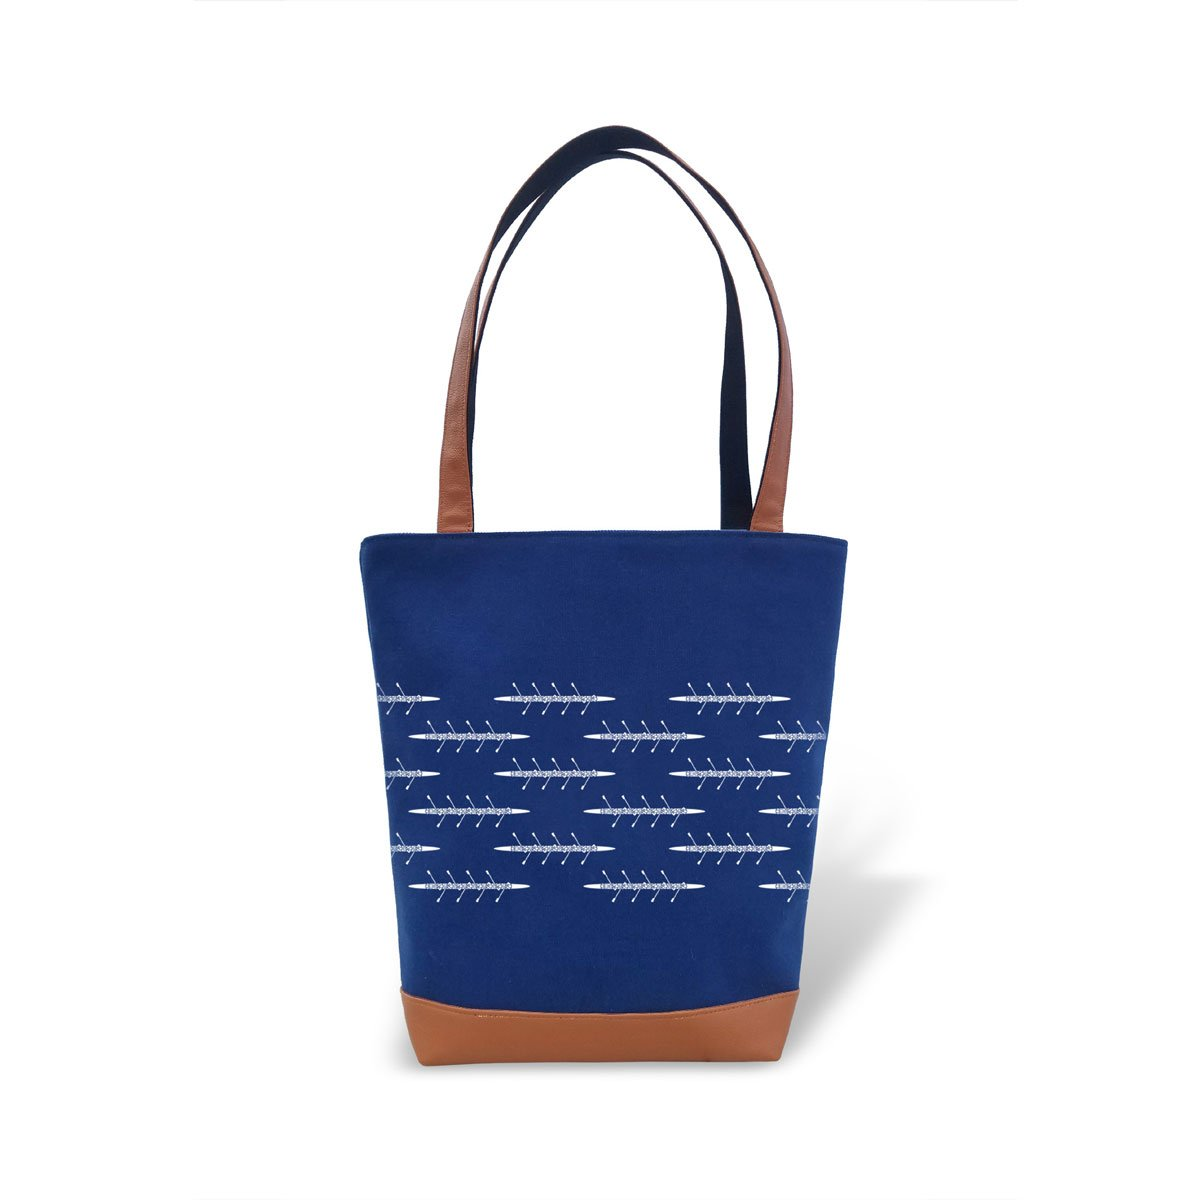 Tote Bag - Classic - Strokeside Designs Rowing jewelry- Rowing Gifts Ideas- Rowing Coach Gifts